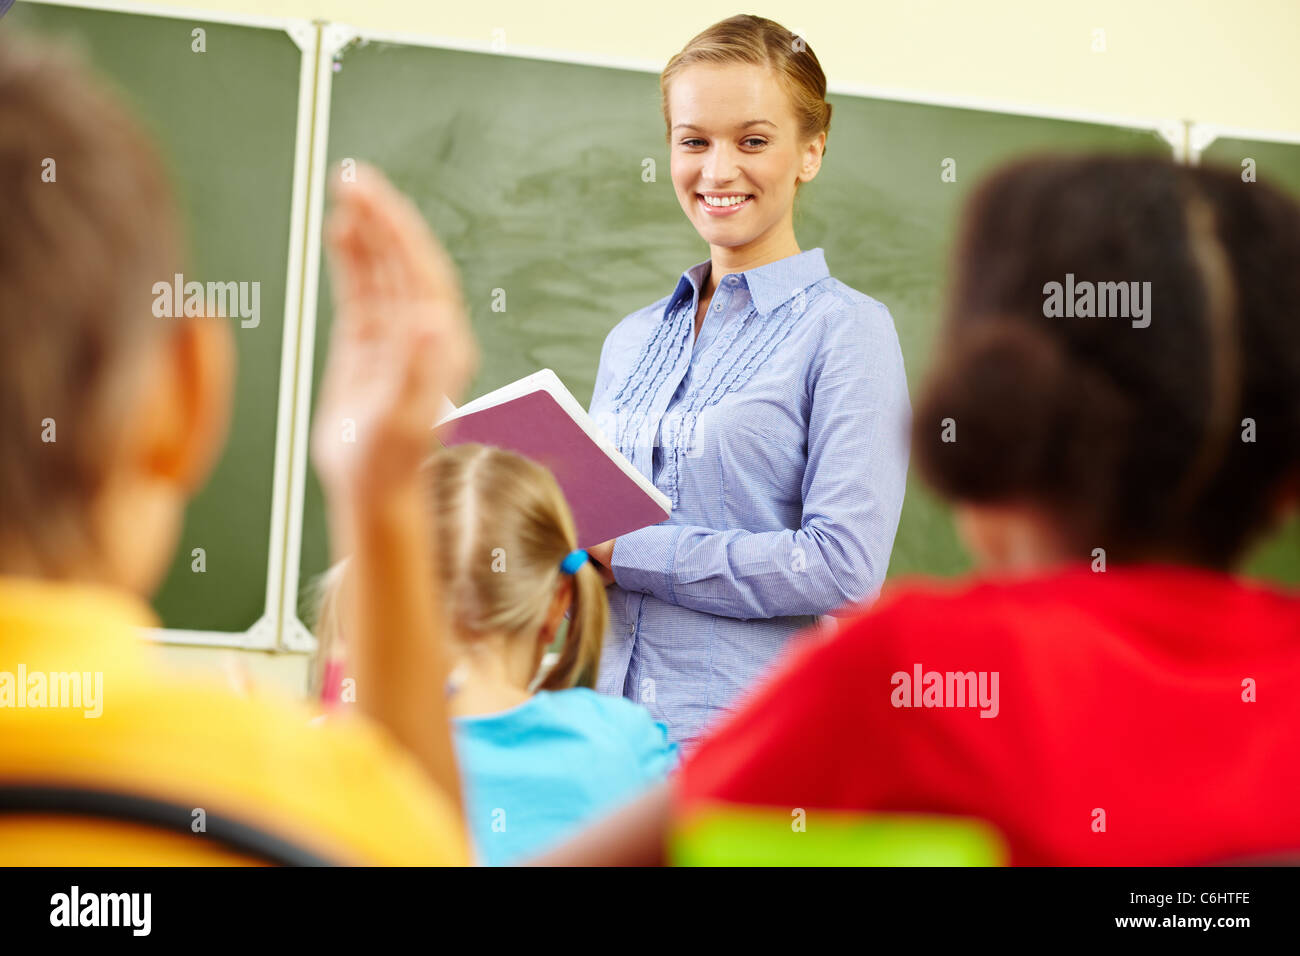 Portrait of smart teacher with exercise book looking at schoolkids in classroom - Stock Image